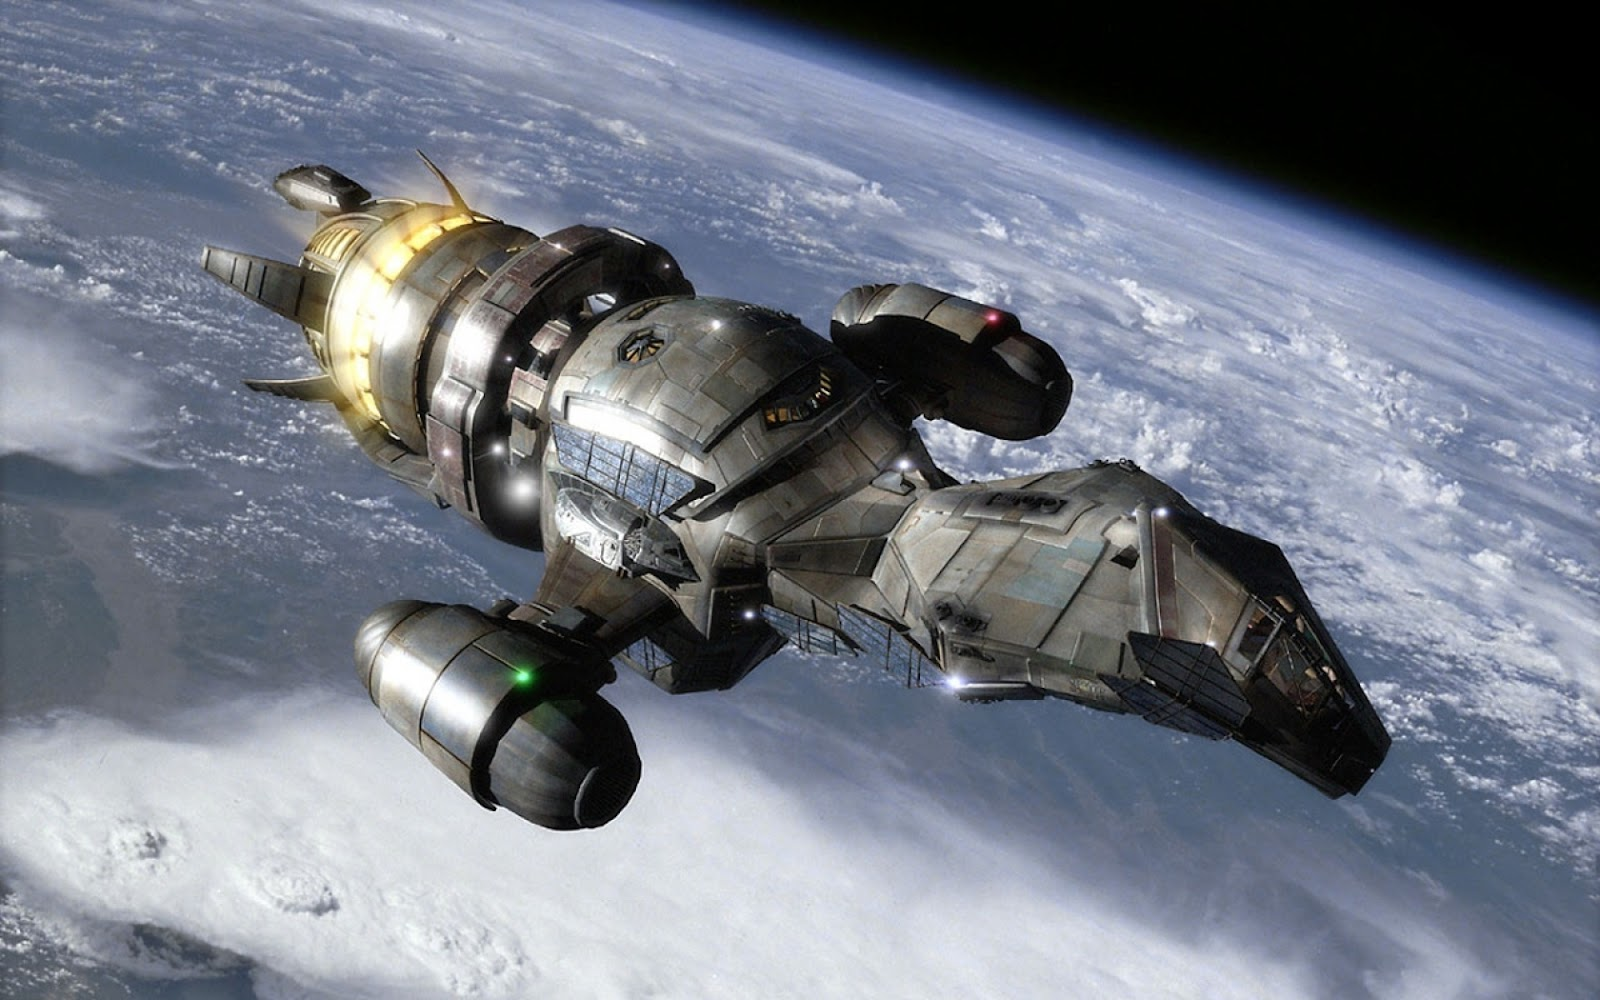 serenity_outer_space_planets_earth_firefly_spaceships_vehicles_1280x960_wallpaper_Wallpaper_1680x1050_www.wall321.com.jpg